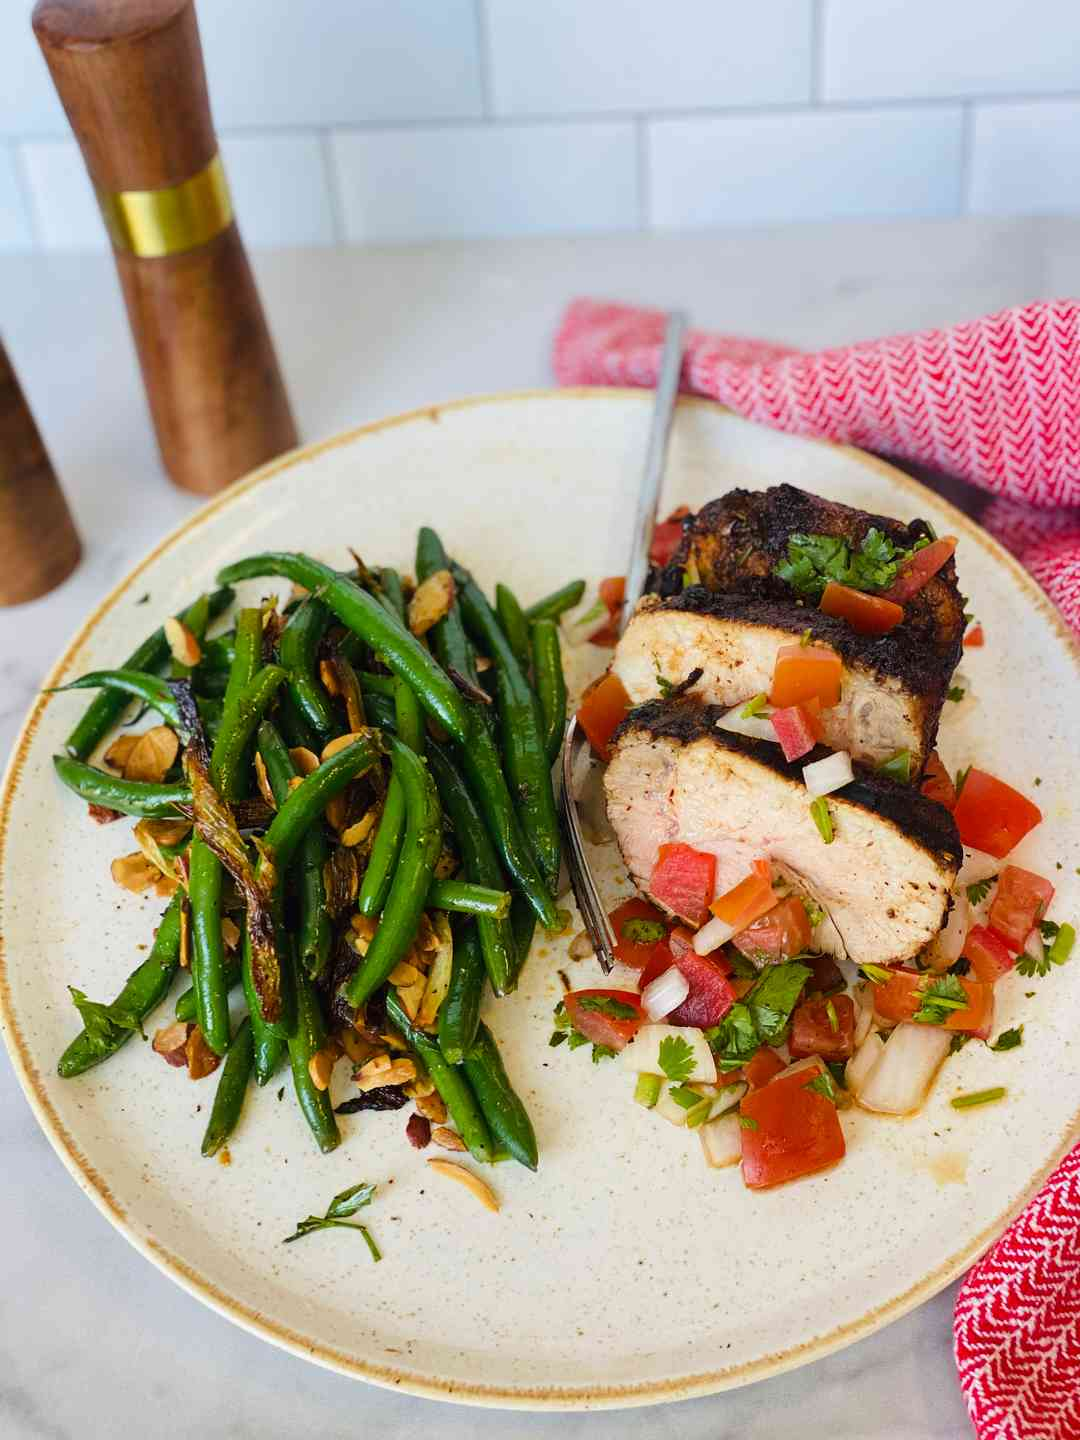 South West Pork Tenderloin with Green Beans and Fennel